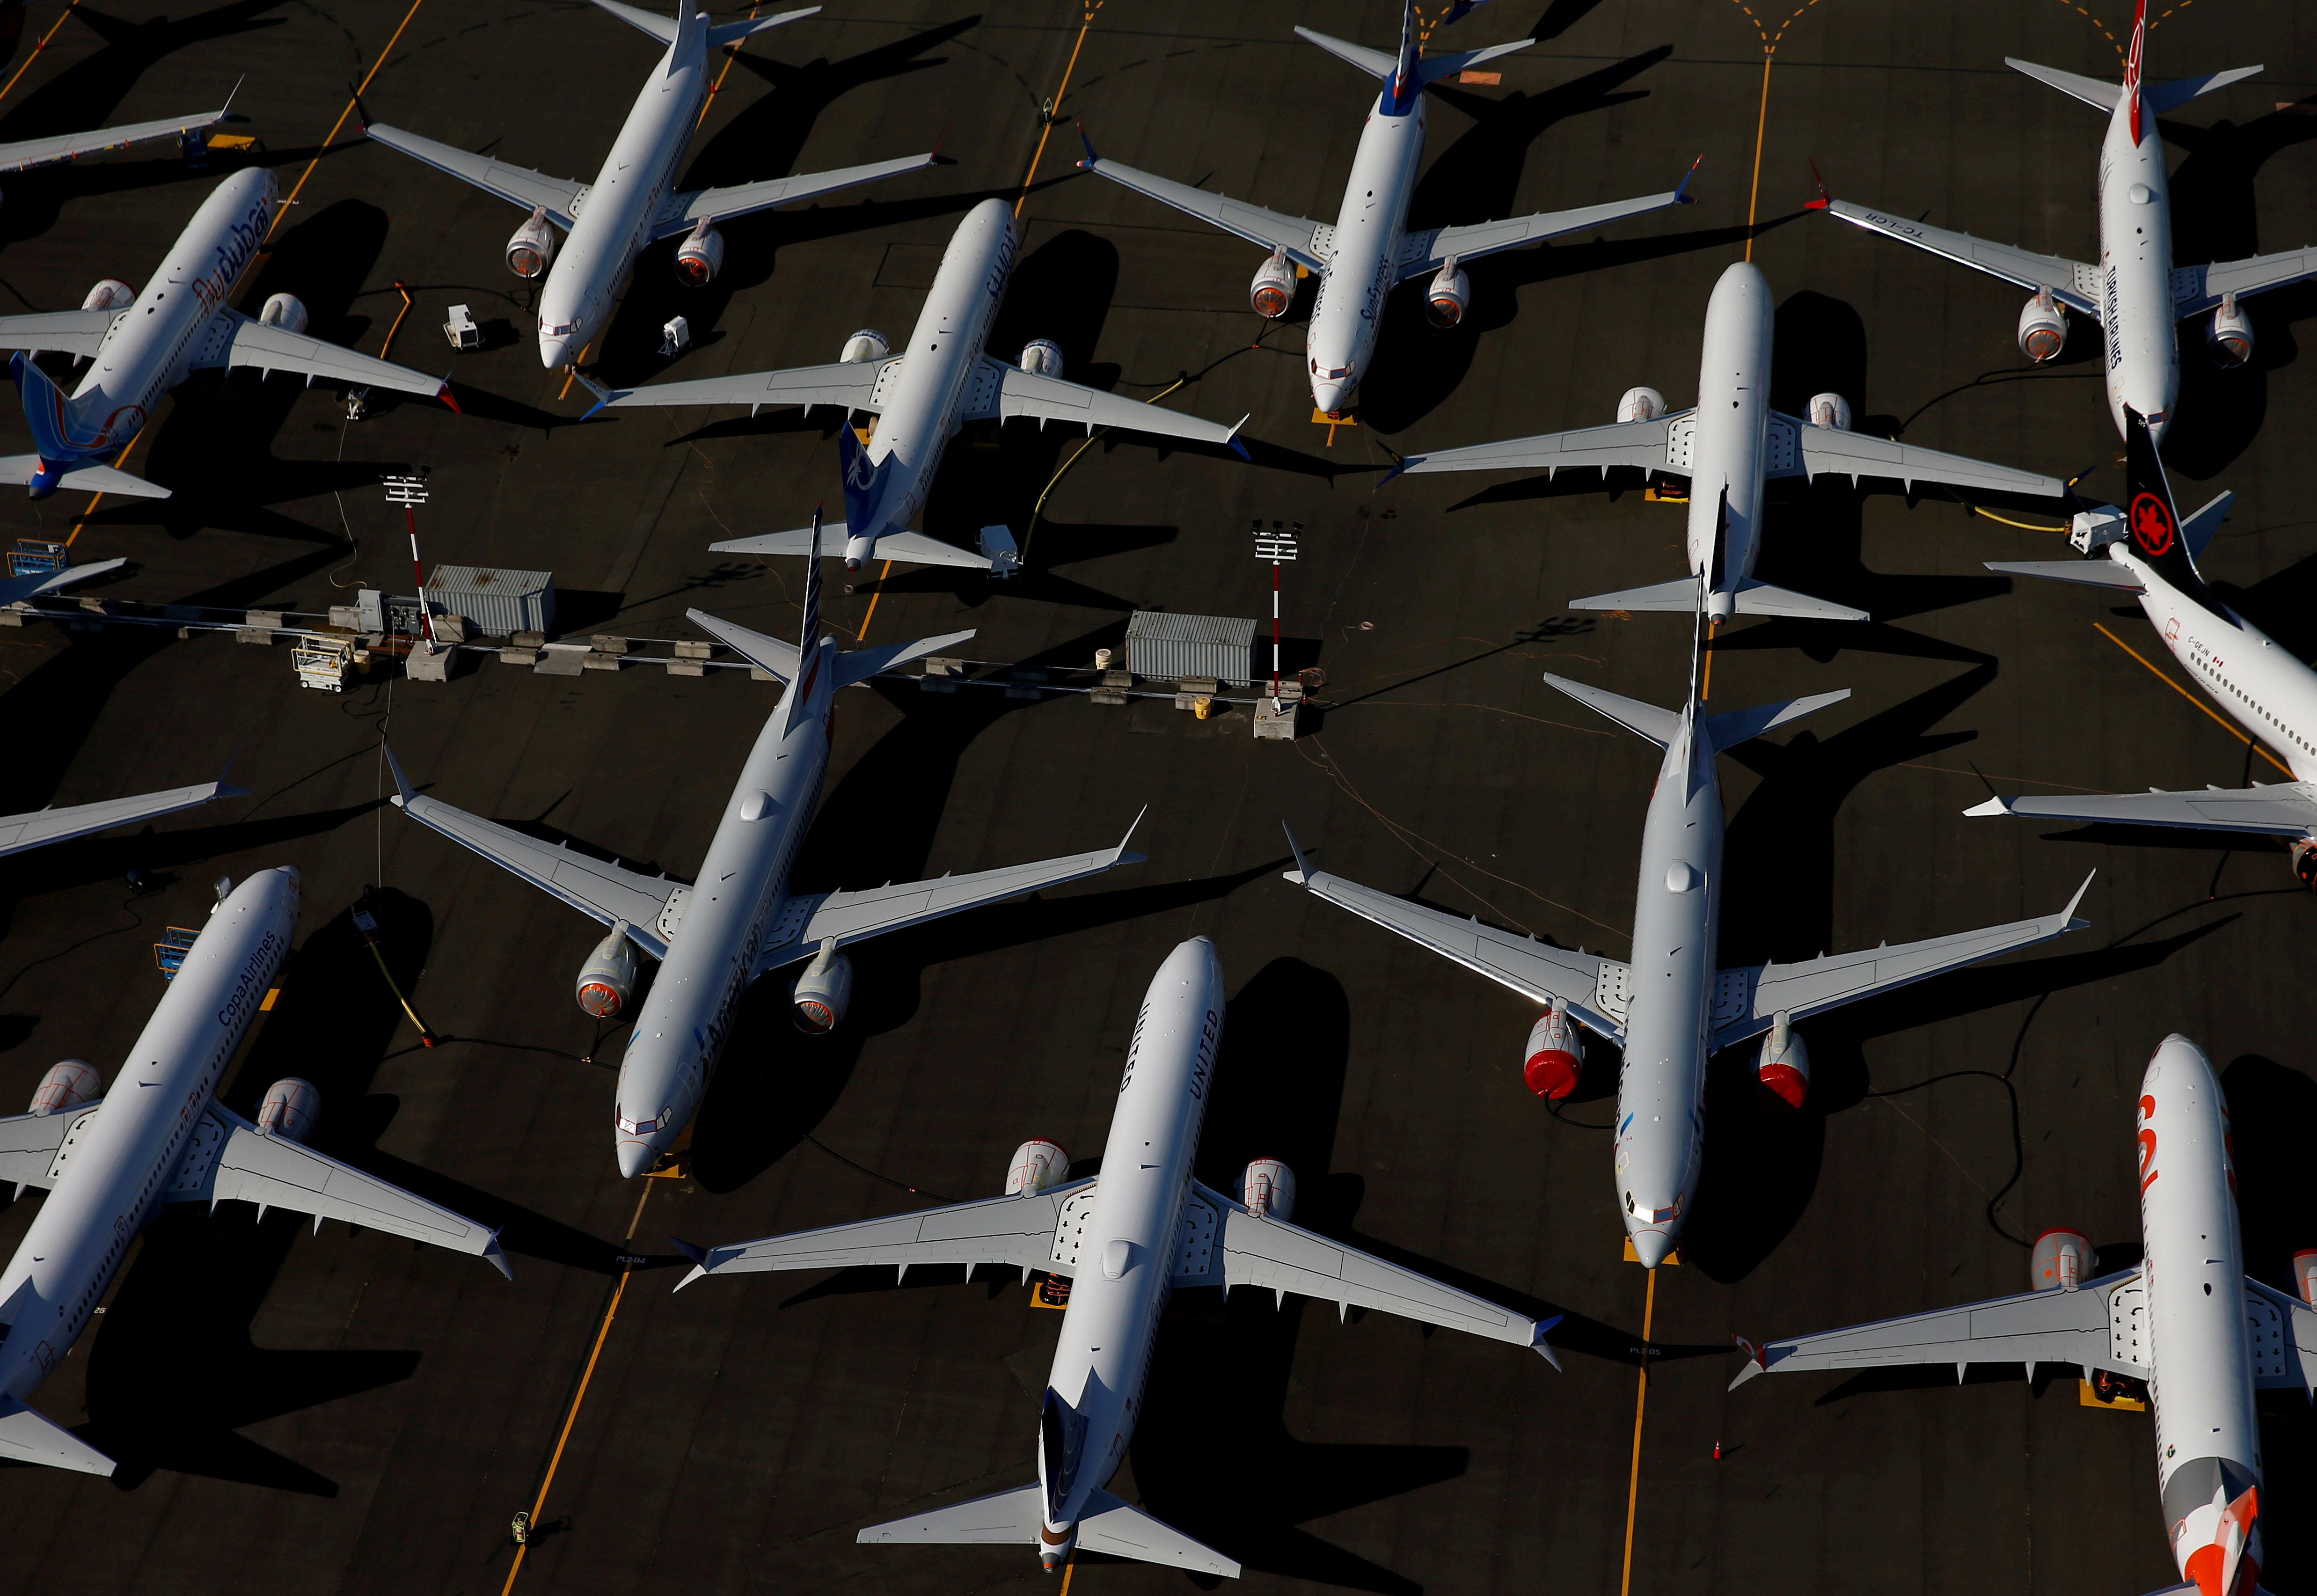 Grounded Boeing 737 MAX aircraft are seen parked in an aerial photo at Boeing Field in Seattle, Washington, U.S. July 1, 2019. REUTERS/Lindsey Wasson/File Photo